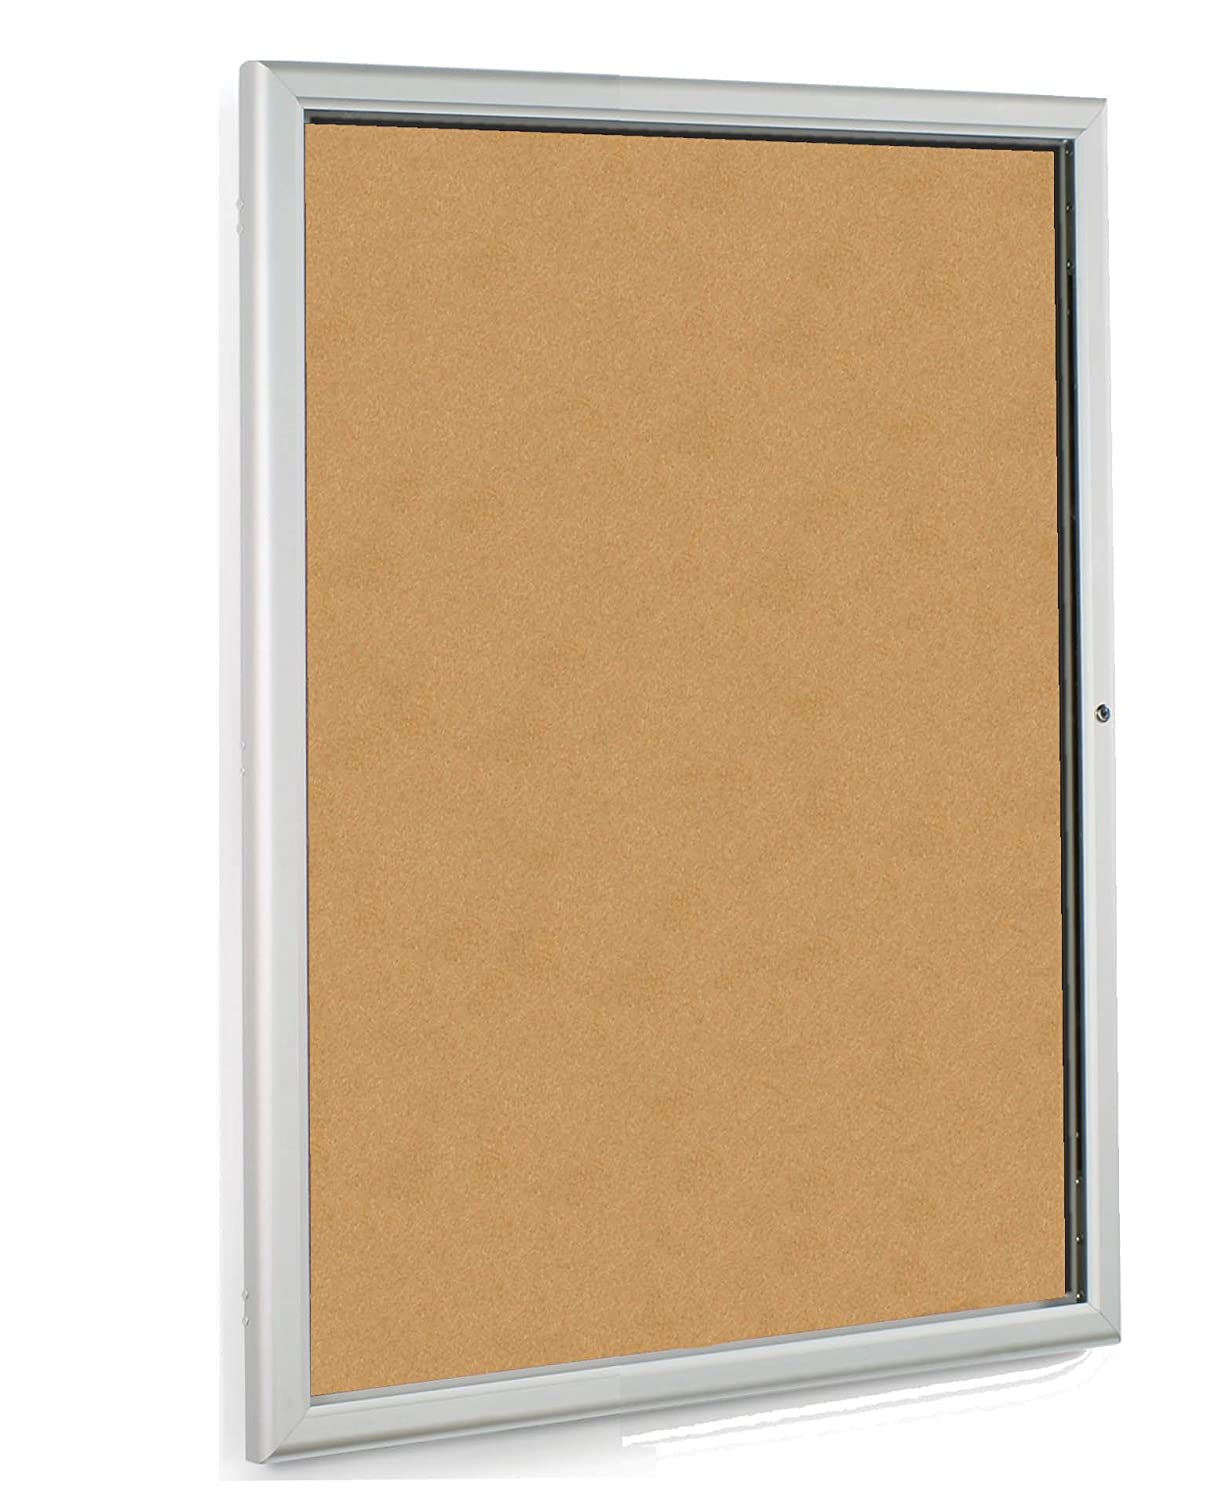 Displays2go 24 x 36 Inches Enclosed Bulletin Board with Silver Aluminum Frame with Locking Swing-Open Door (CKSBTW2436) George Patton Associates